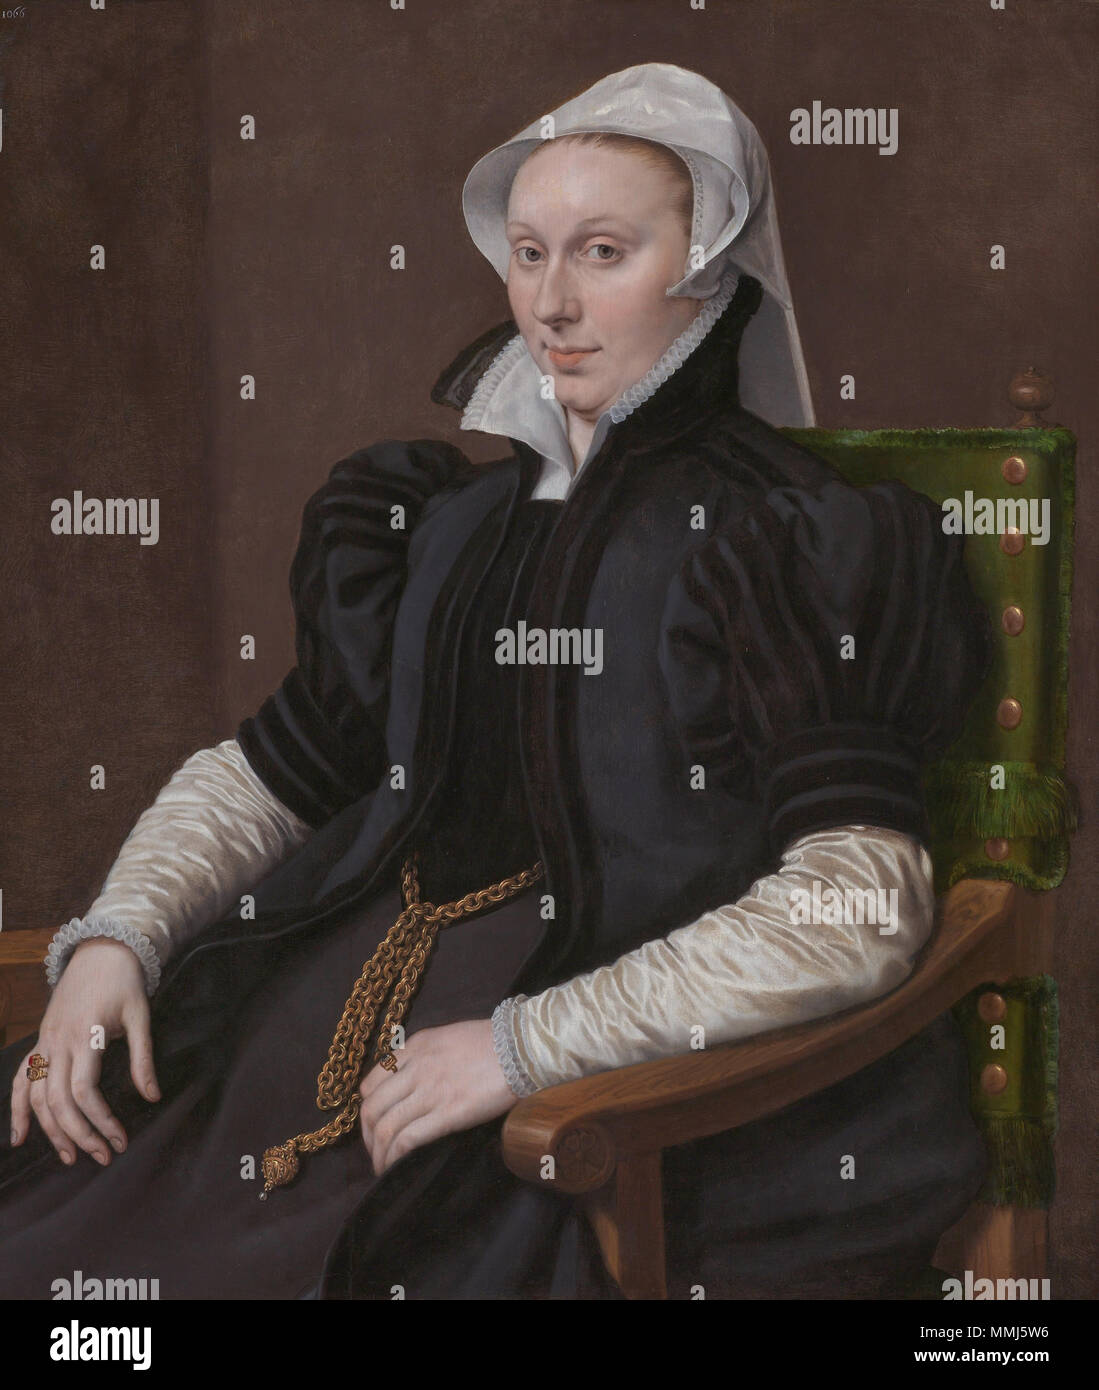 . Portrait of Anne Fernely (d. 1596), since 1544 wife of Sir Thomas Gresham. Pendant of a portrait of her husband (see File:Anthonis Mor 004.jpg).  Anne Fernely (Lady Gresham), de echtgenote van Sir Thomas Gresham Anthonis Mor 005 - Stock Image